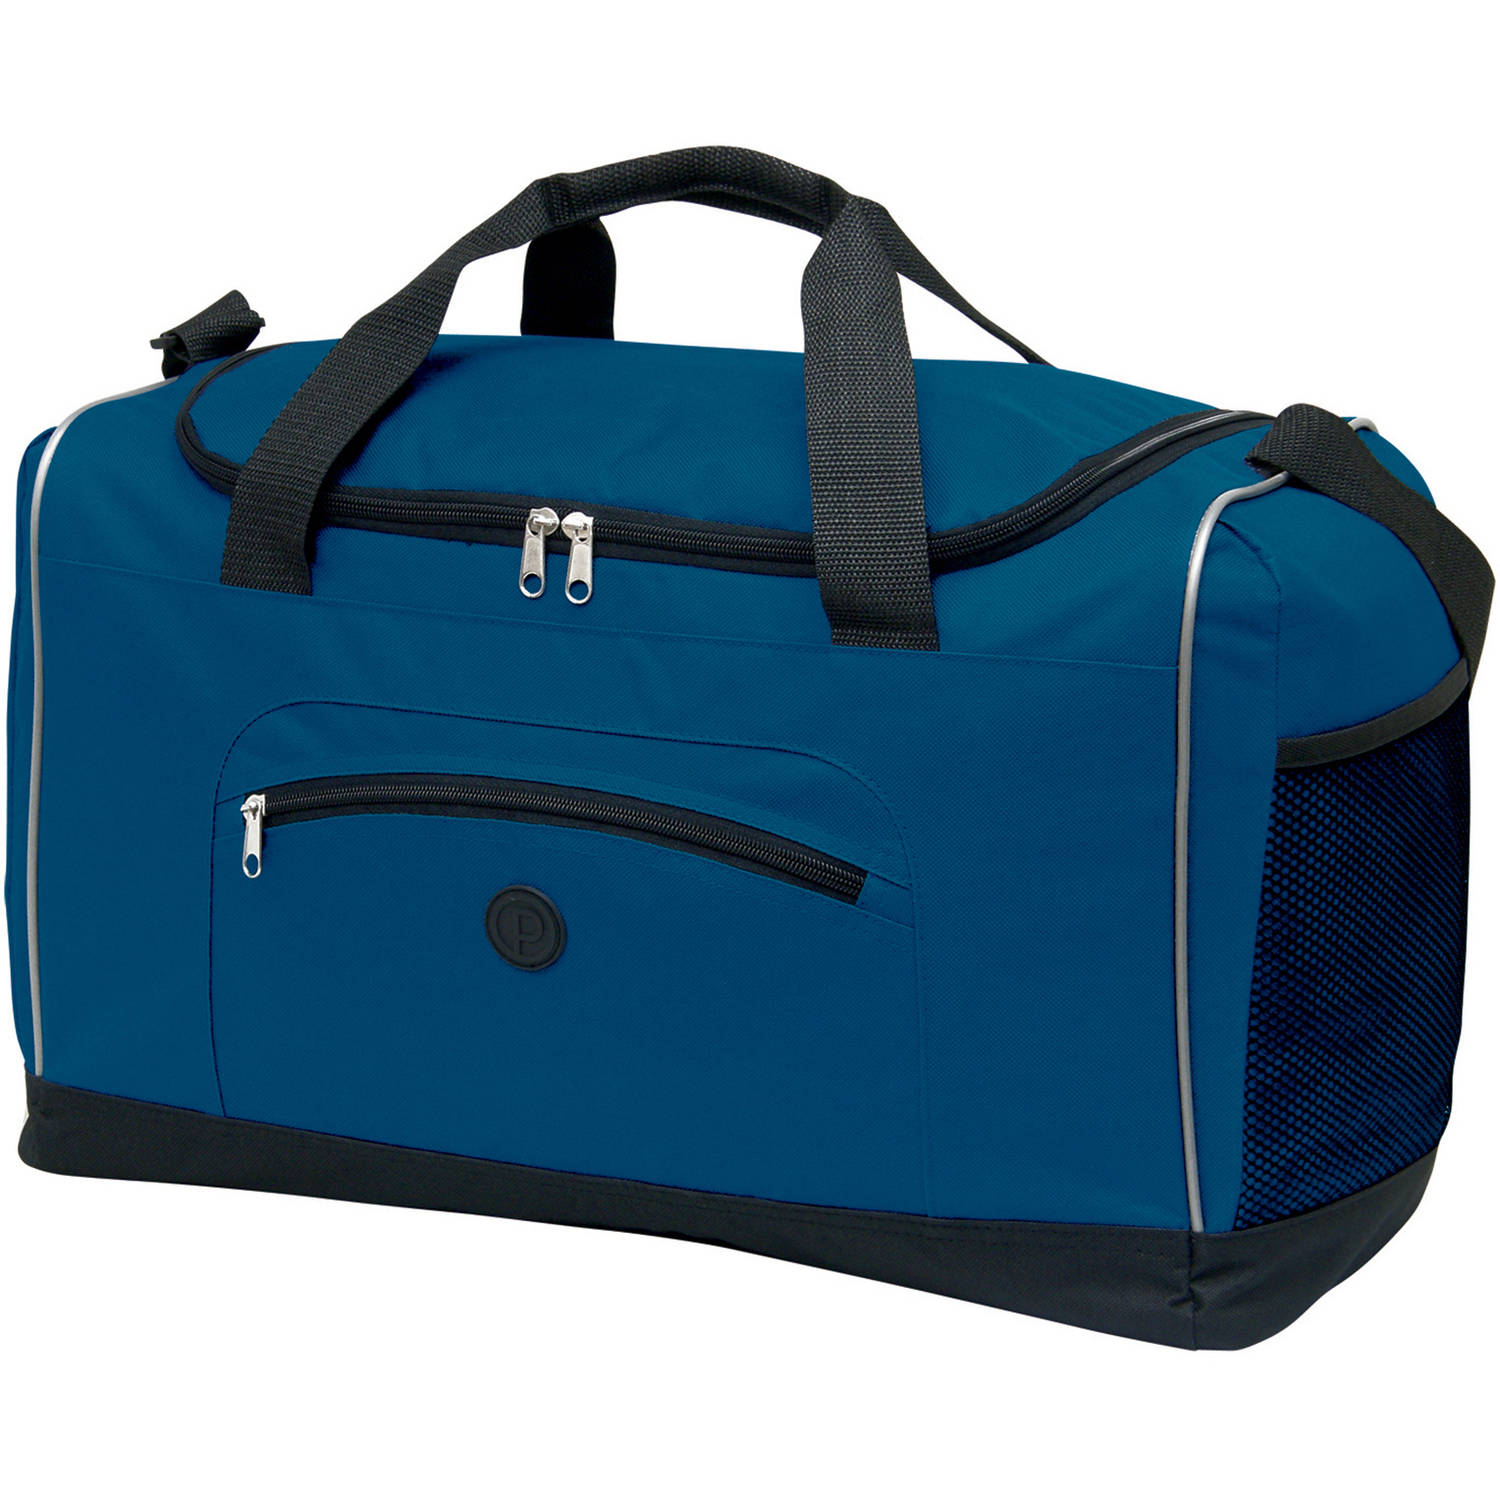 "Protege 18"" Sports Duffel"